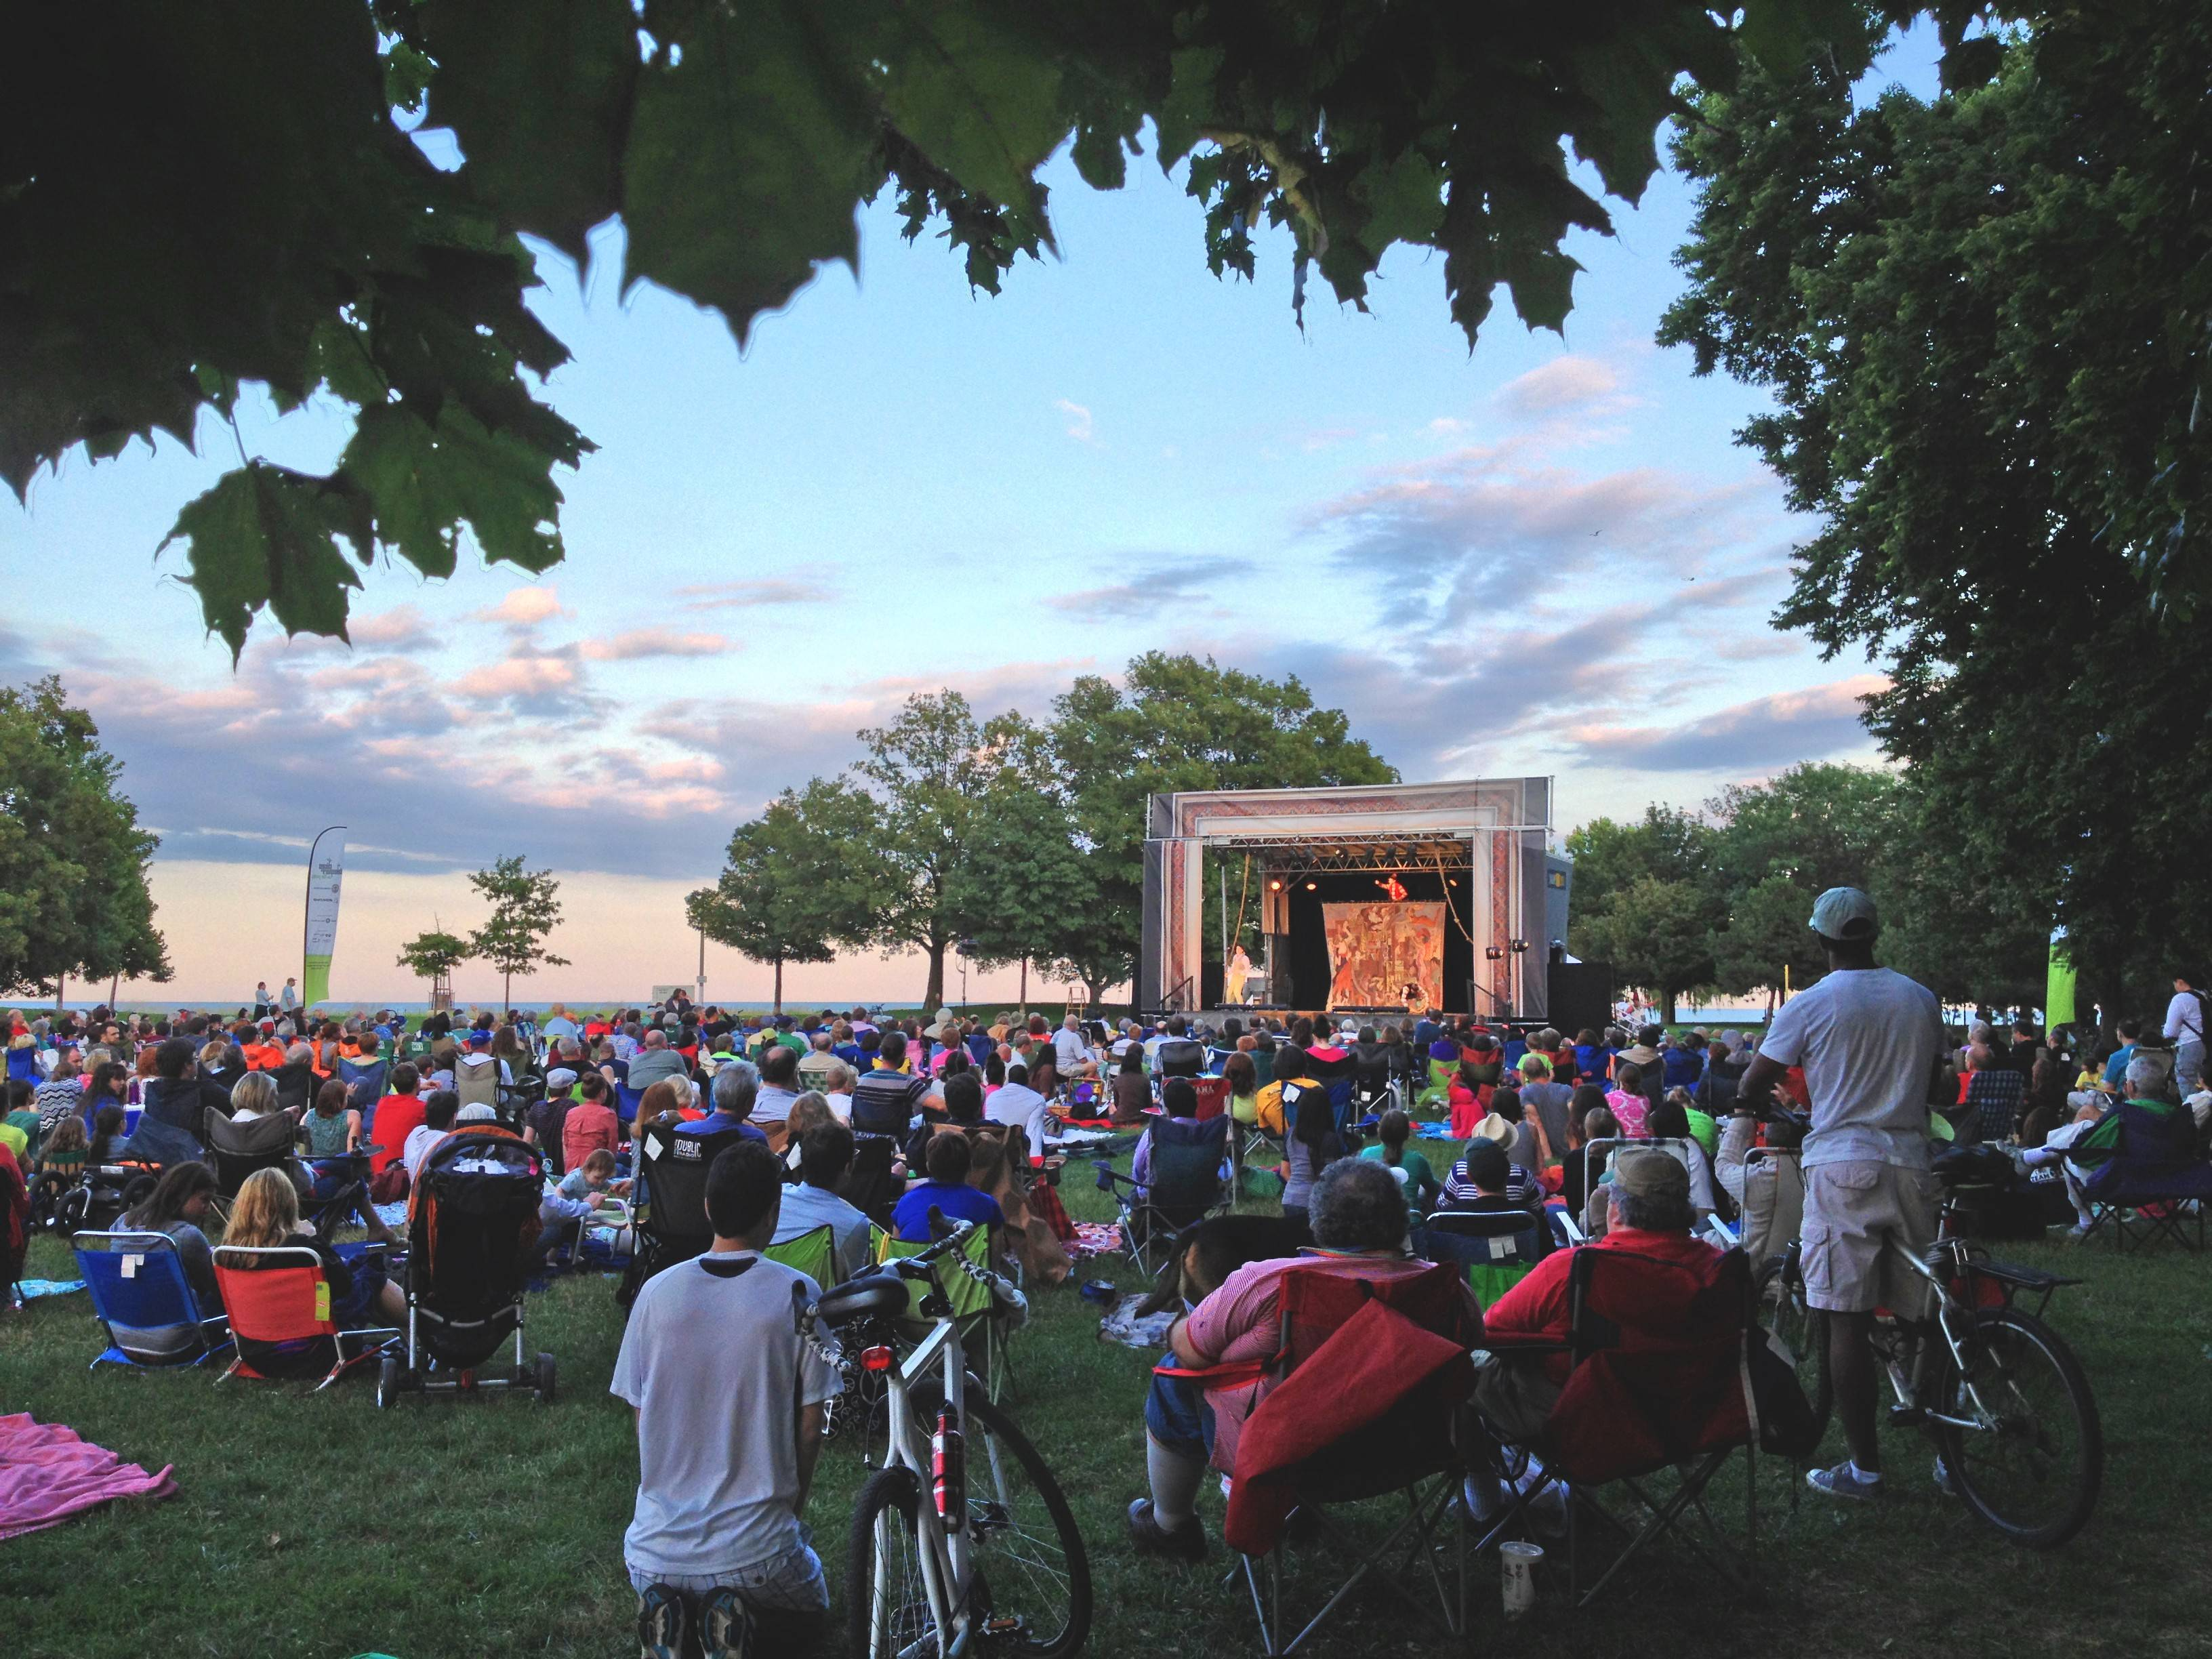 Audience members gathered in Loyola Park in Chicago last summer to see Shakespeare in the Parks.